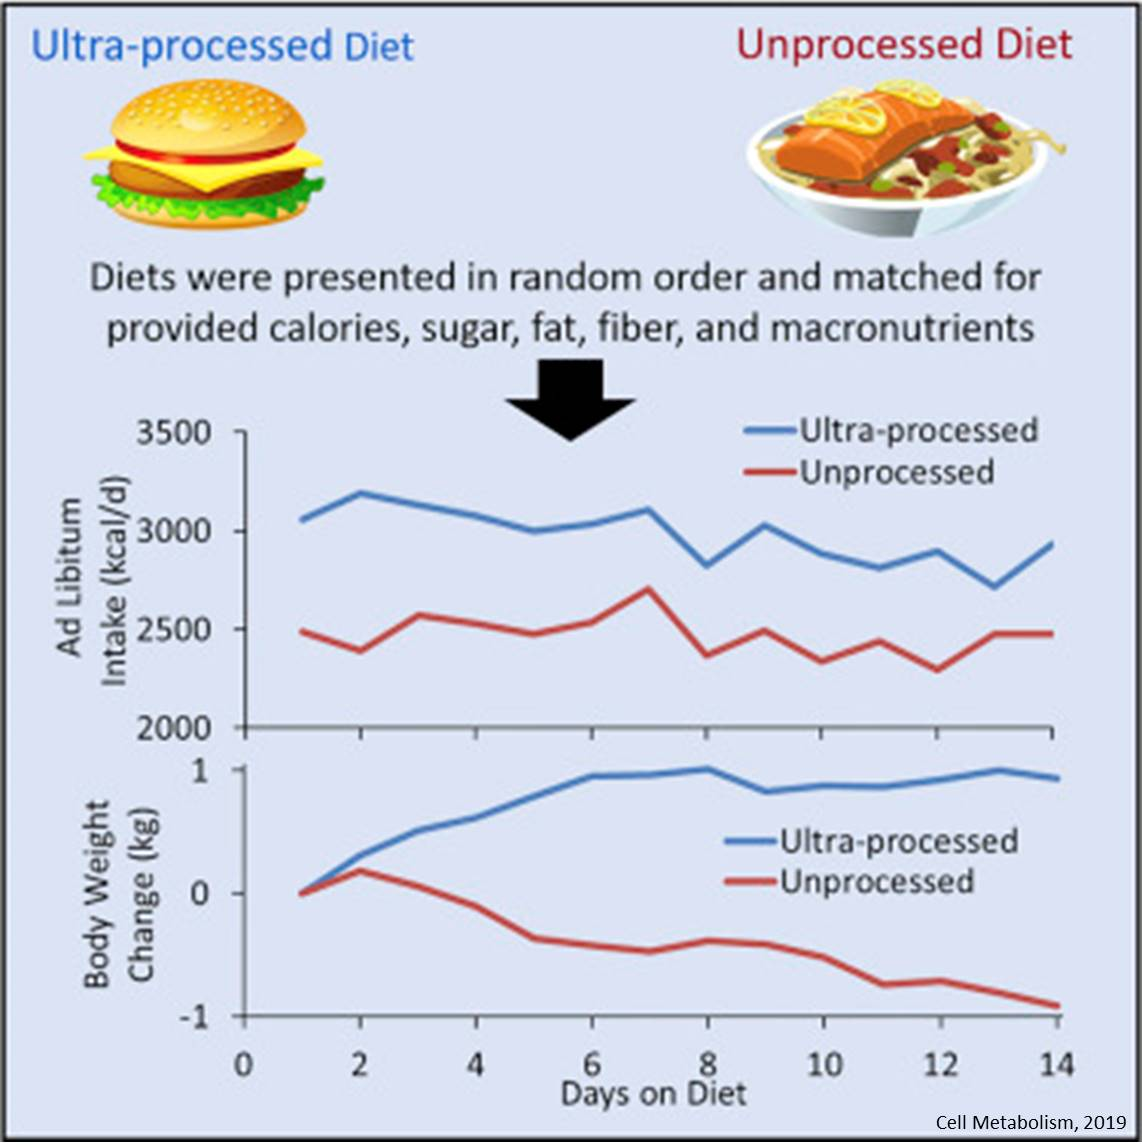 Heavily processed foods cause overeating and weight gain